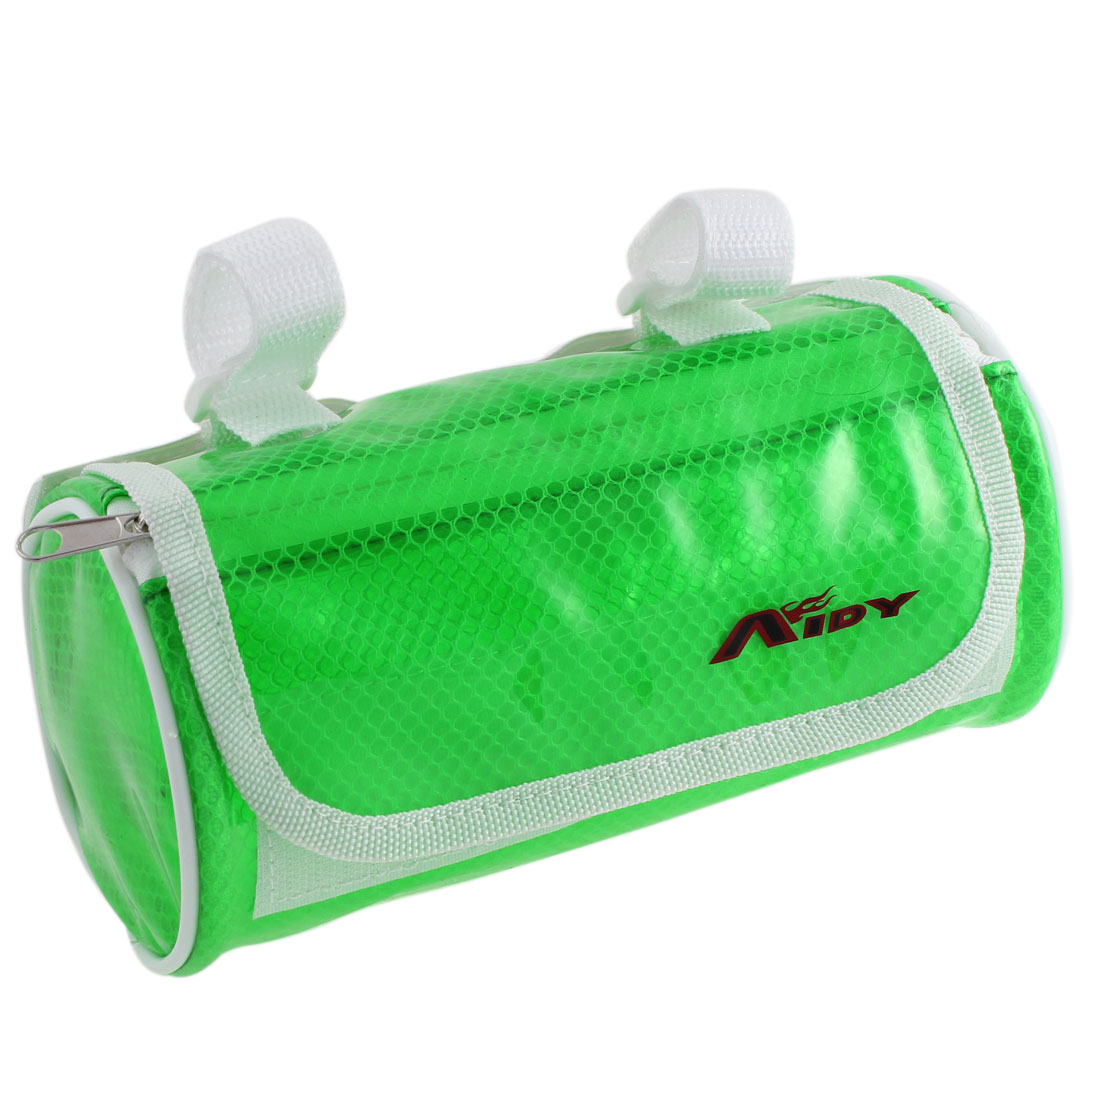 Cycling Bike Bicycle Front Pannier Basket Water Resistant Handlebar Bar Pouch Bag Clear Green